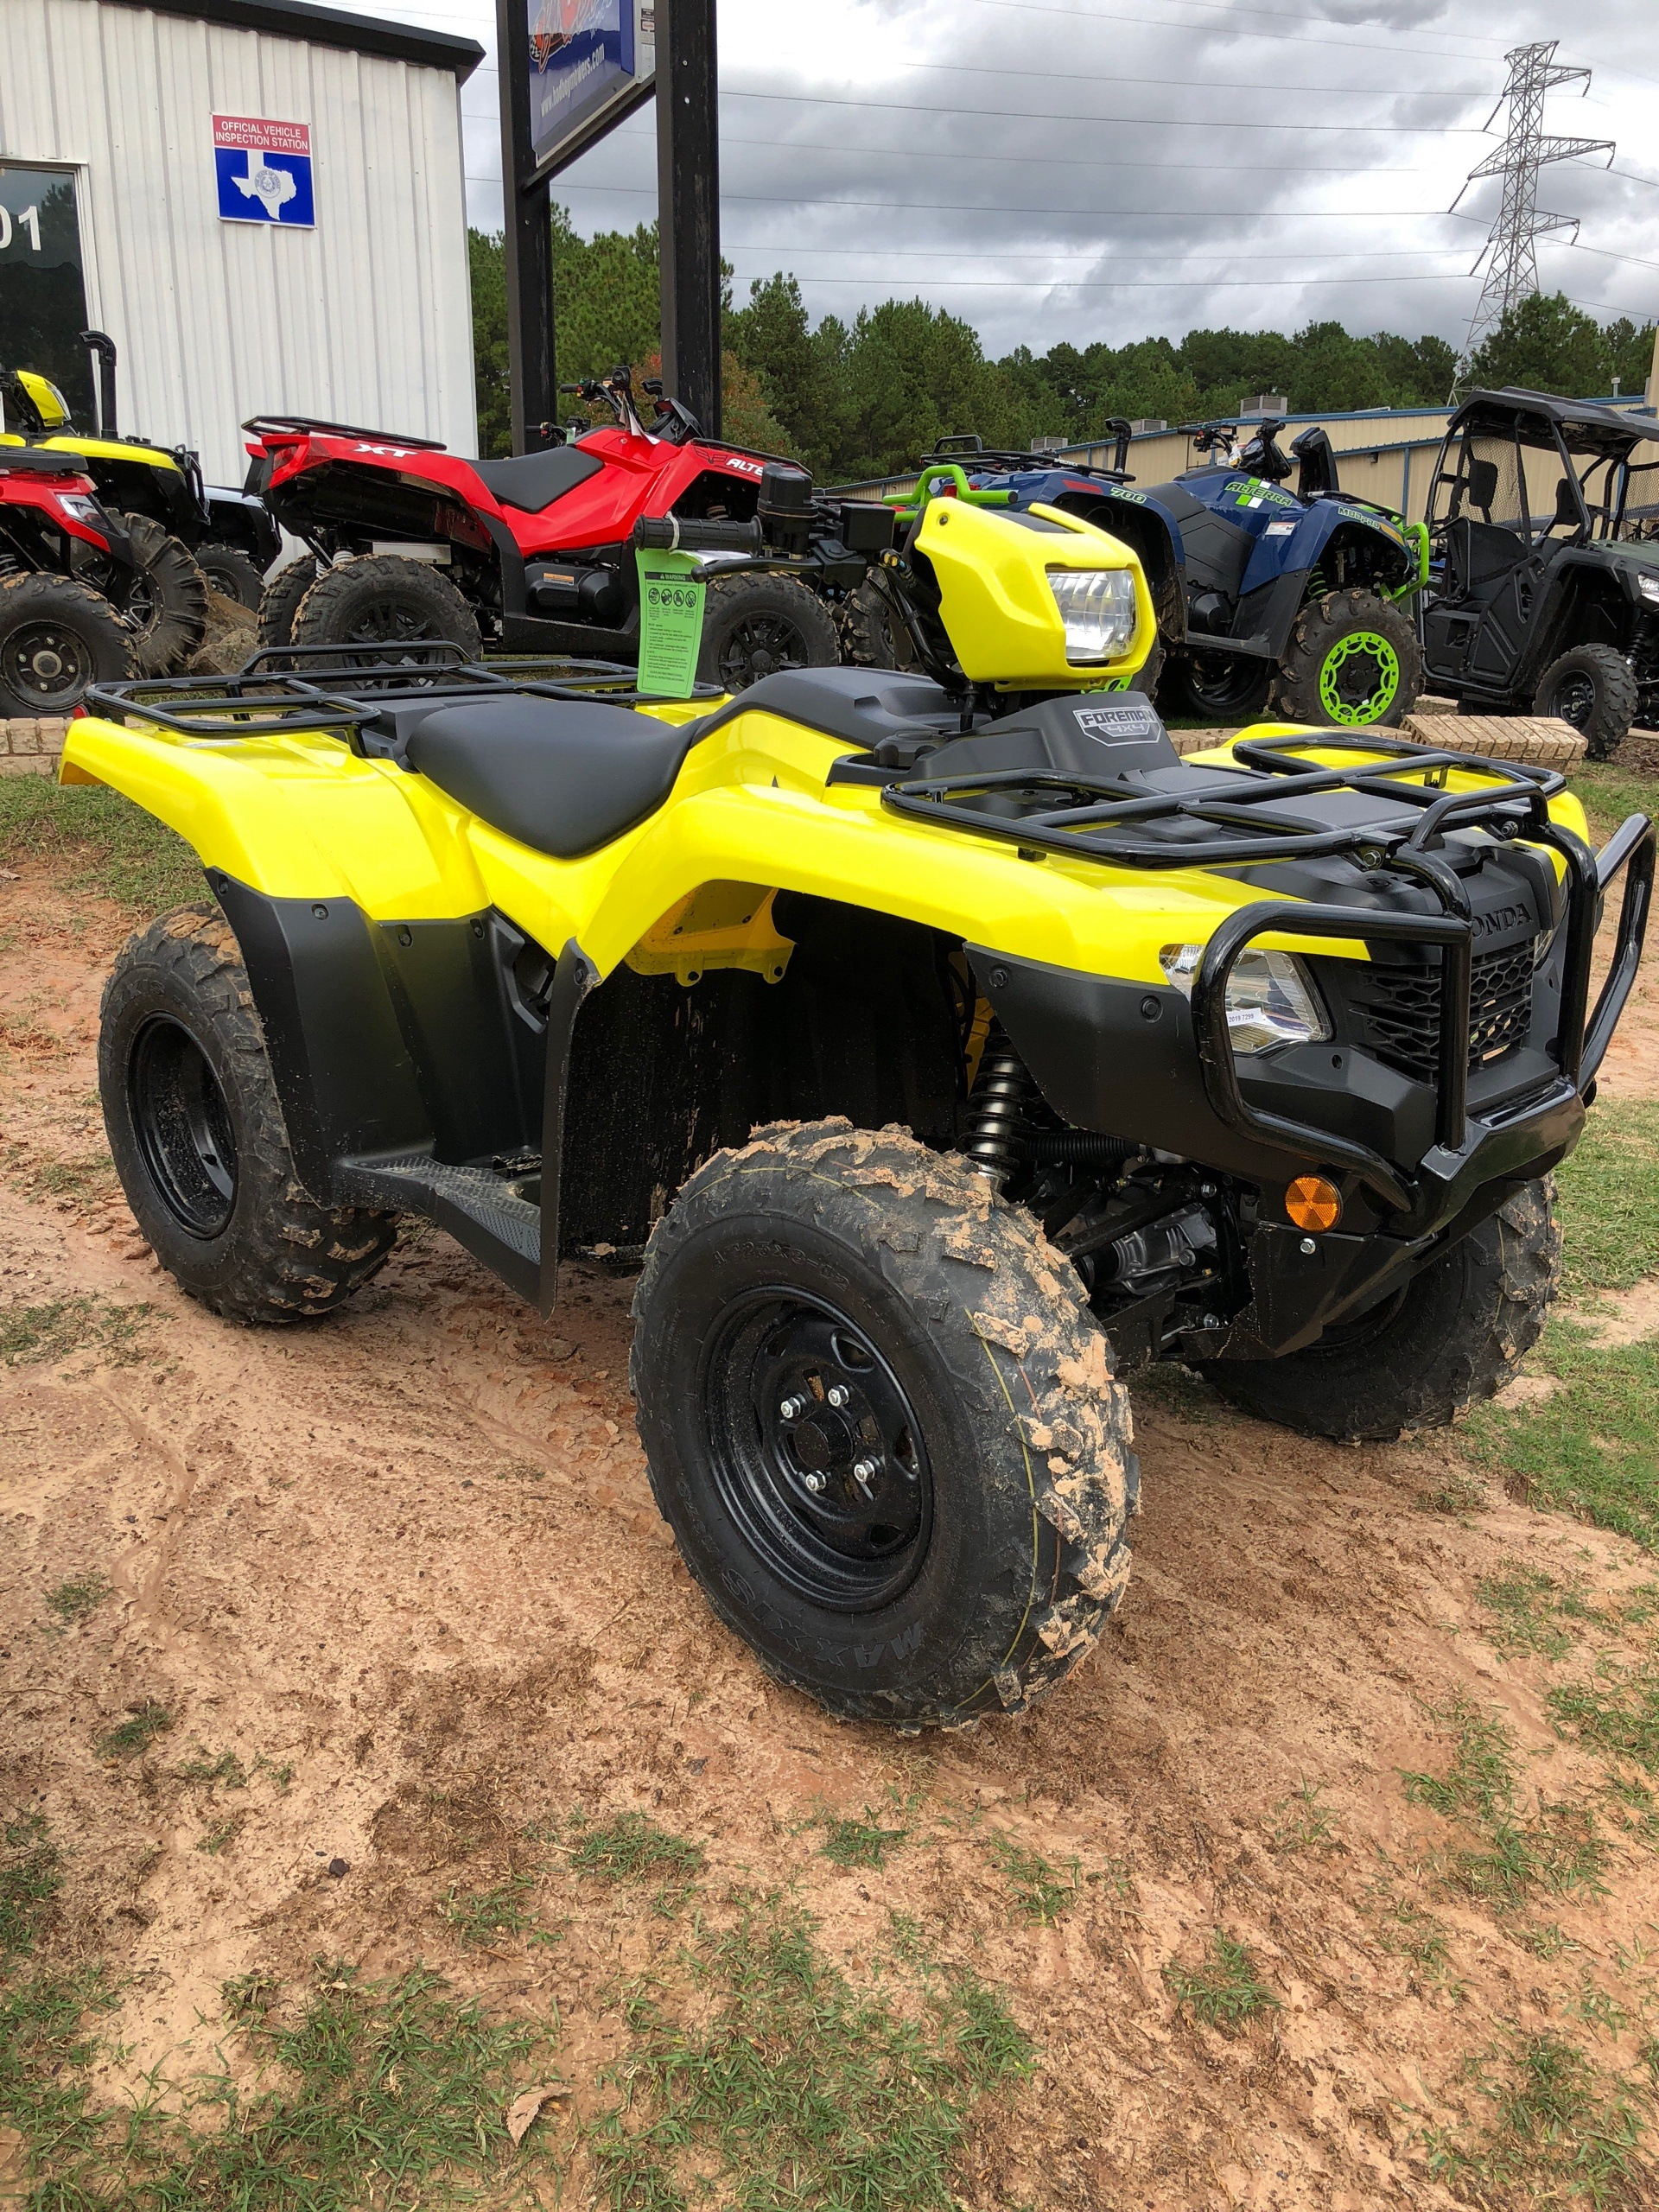 New 2019 Honda Fourtrax Foreman 4x4 Atvs In Tyler Tx Stock Number